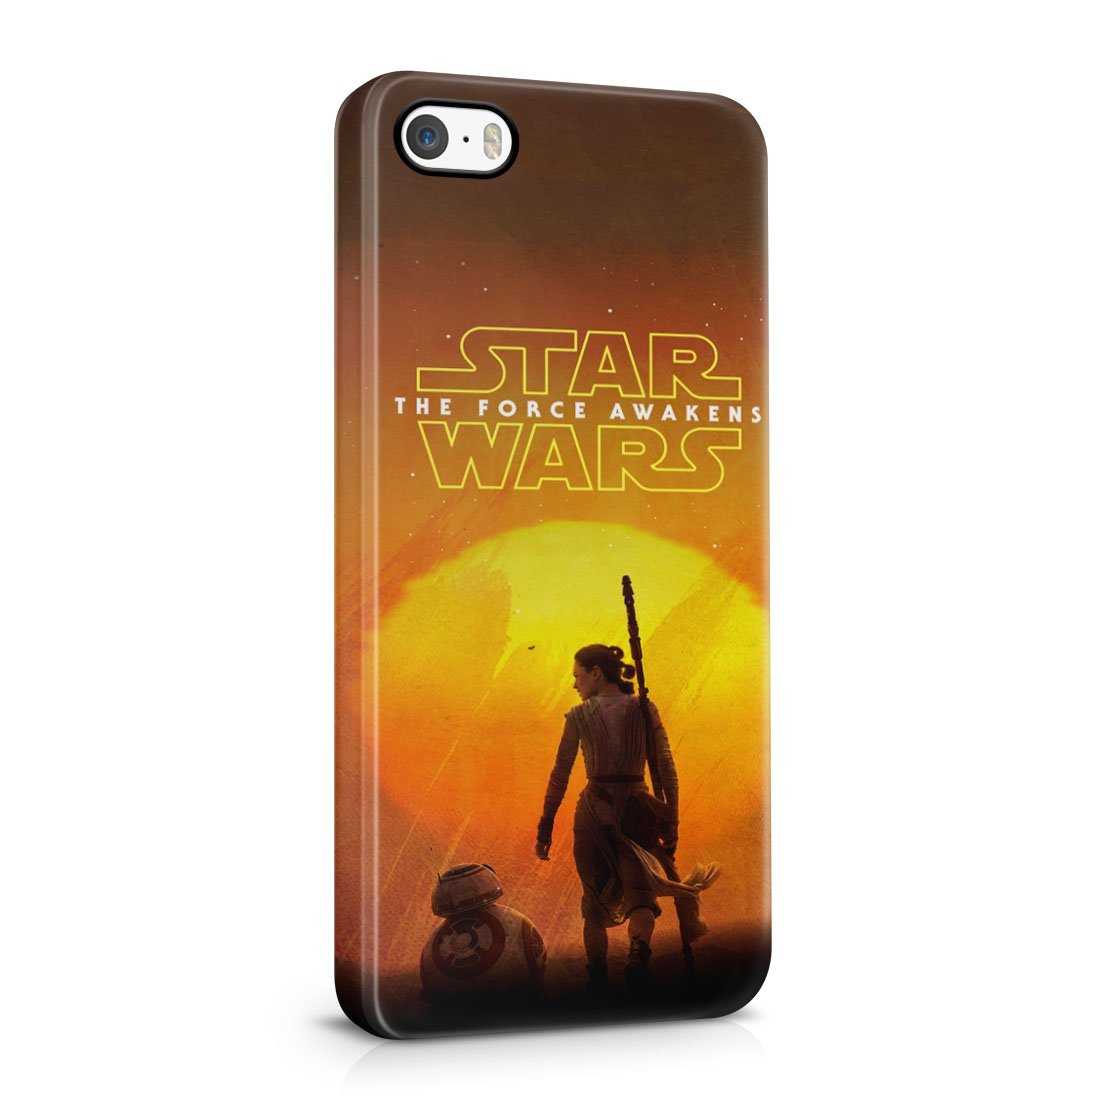 Star Wars The Force Awakens Rey With BB-8 Robot iPhone 5 / 5S Hard Plastic Phone Case Cover